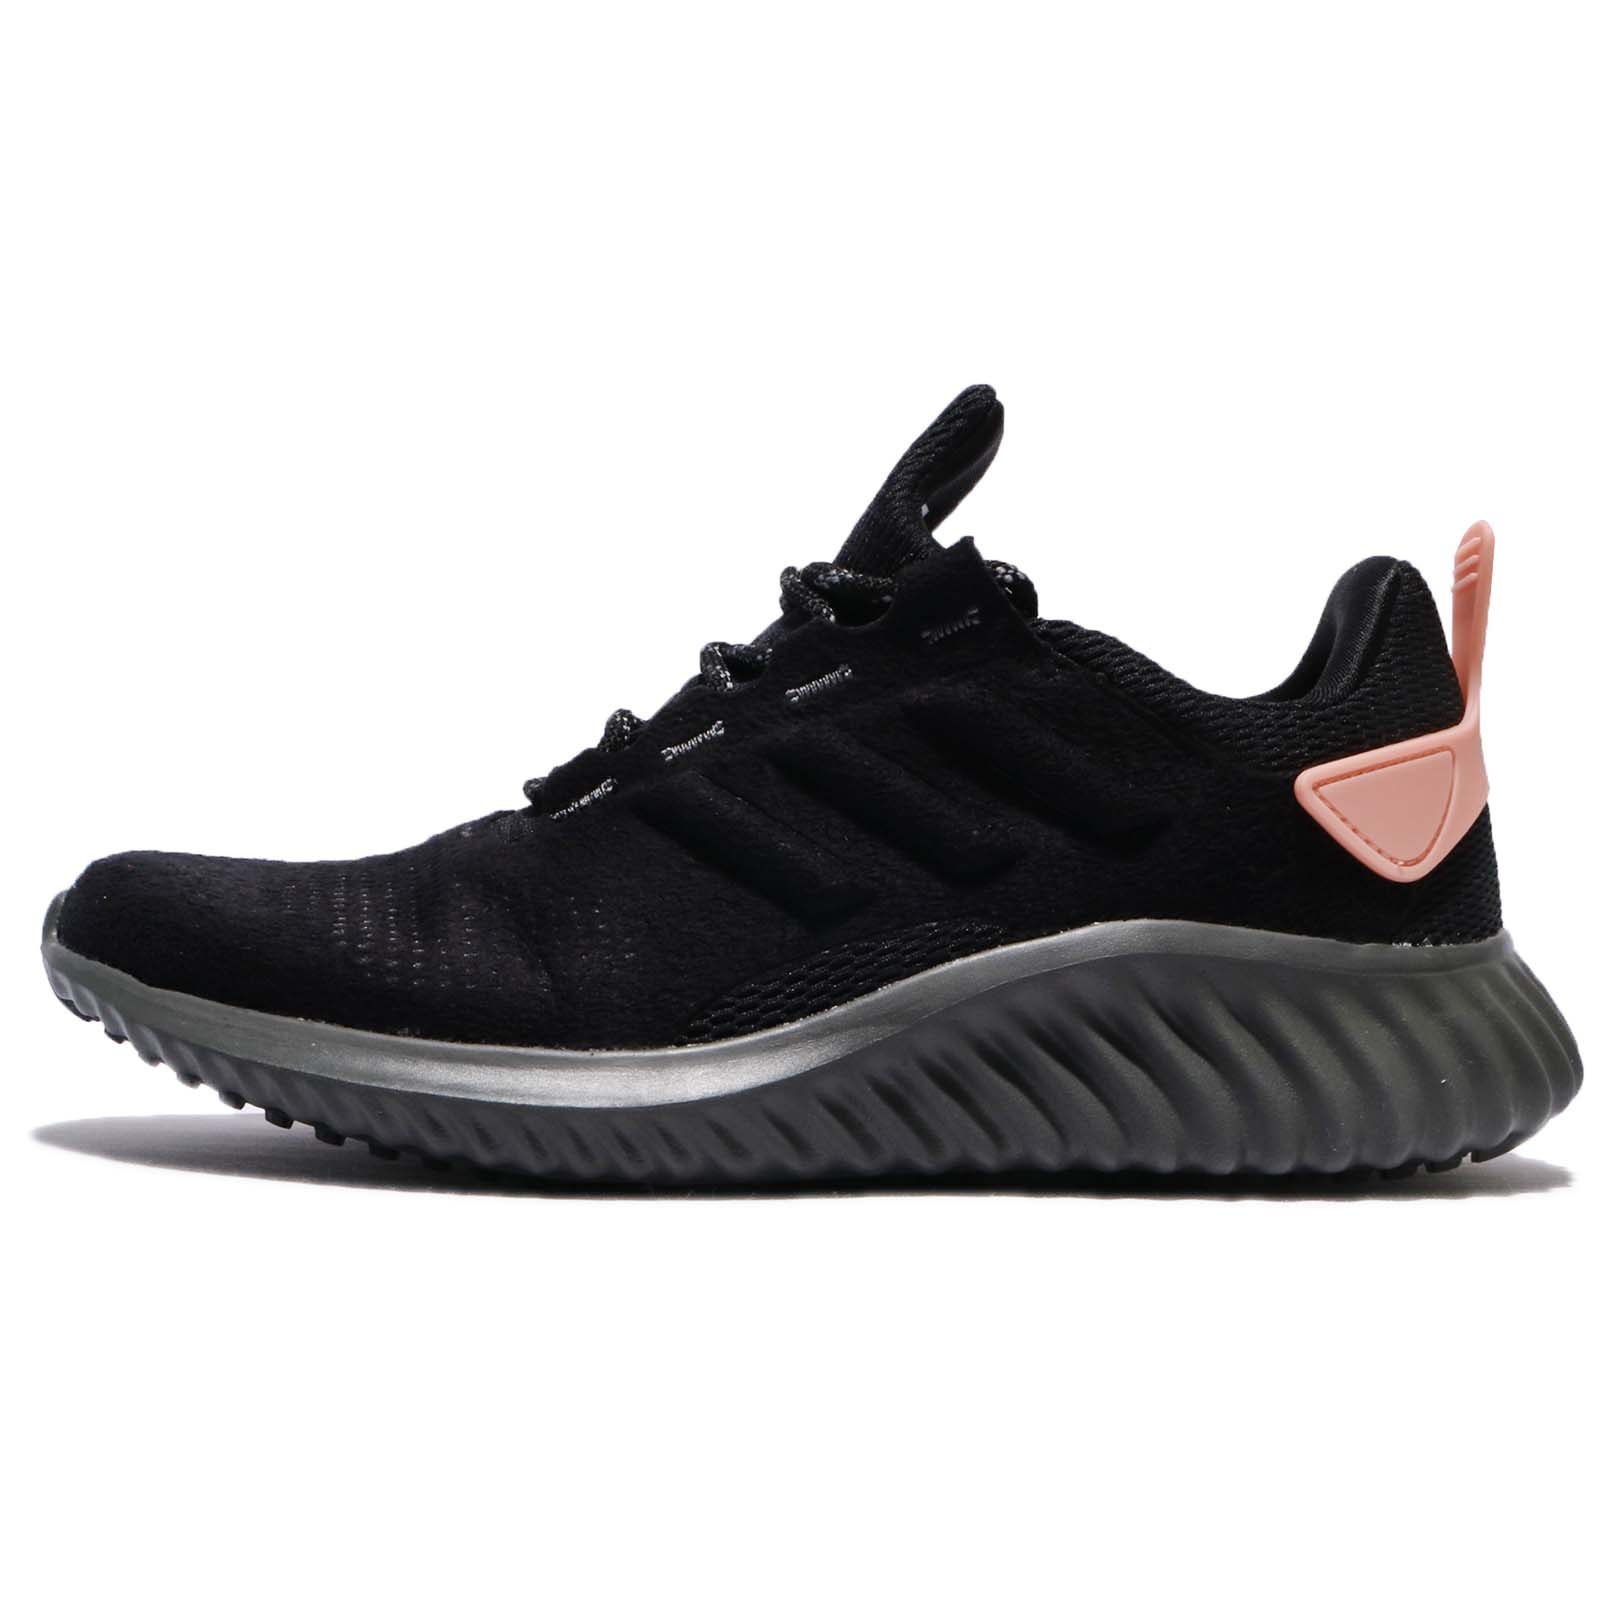 adidas Alphabounce CR W Suede Black Women Running Shoes Sneakers Trainer CG4672